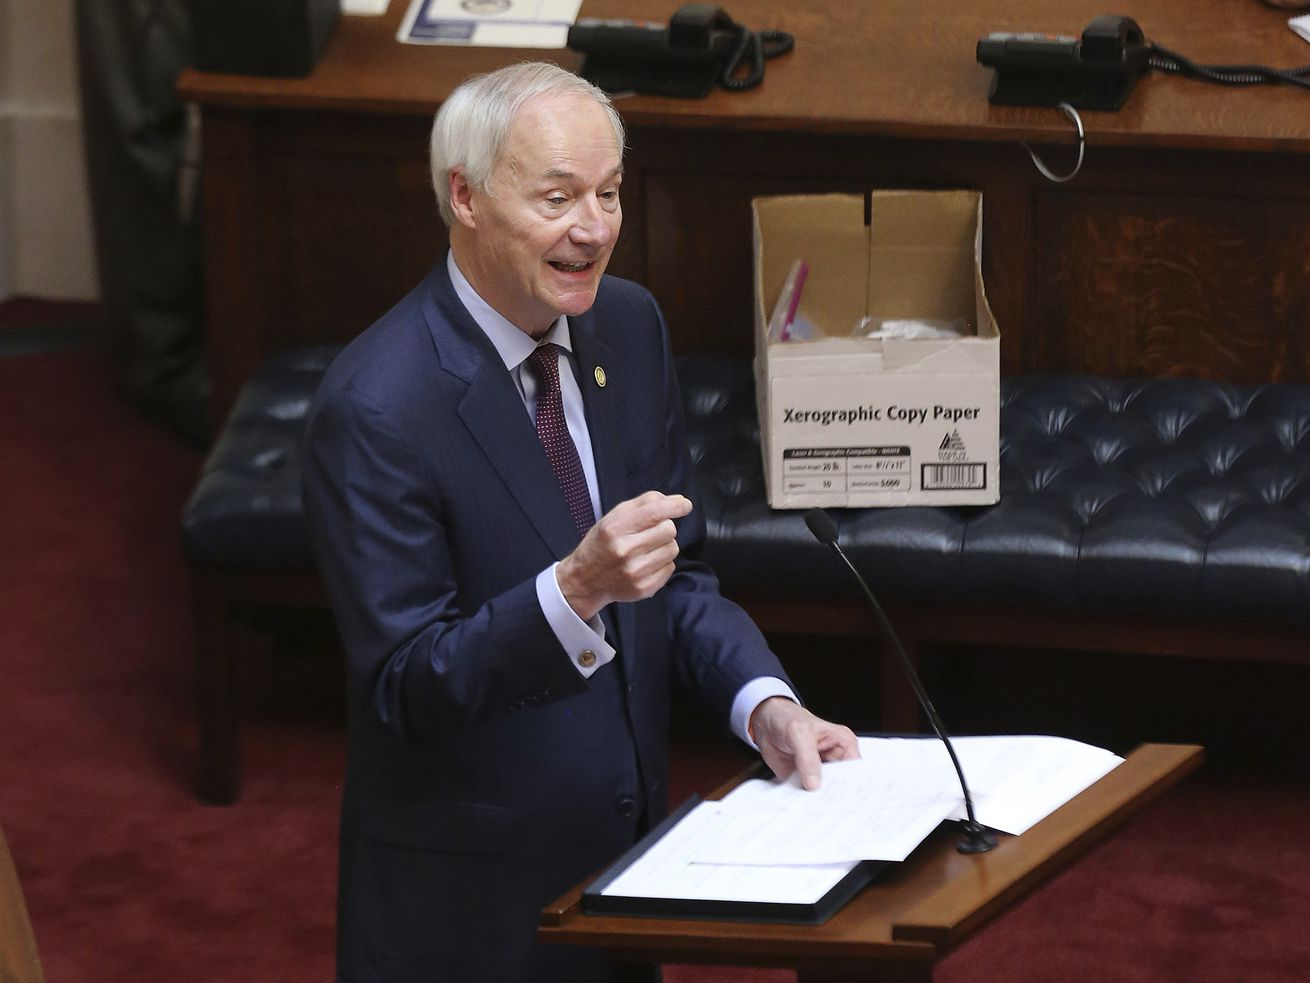 In this April 8, 2020 photo, Arkansas Gov. Asa Hutchinson gives the State of the State in the senate chamber of the state Capitol in Little Rock, Ark. Hutchinson vetoed legislation that would have made his state the first to ban gender confirming treatments for transgender youth.